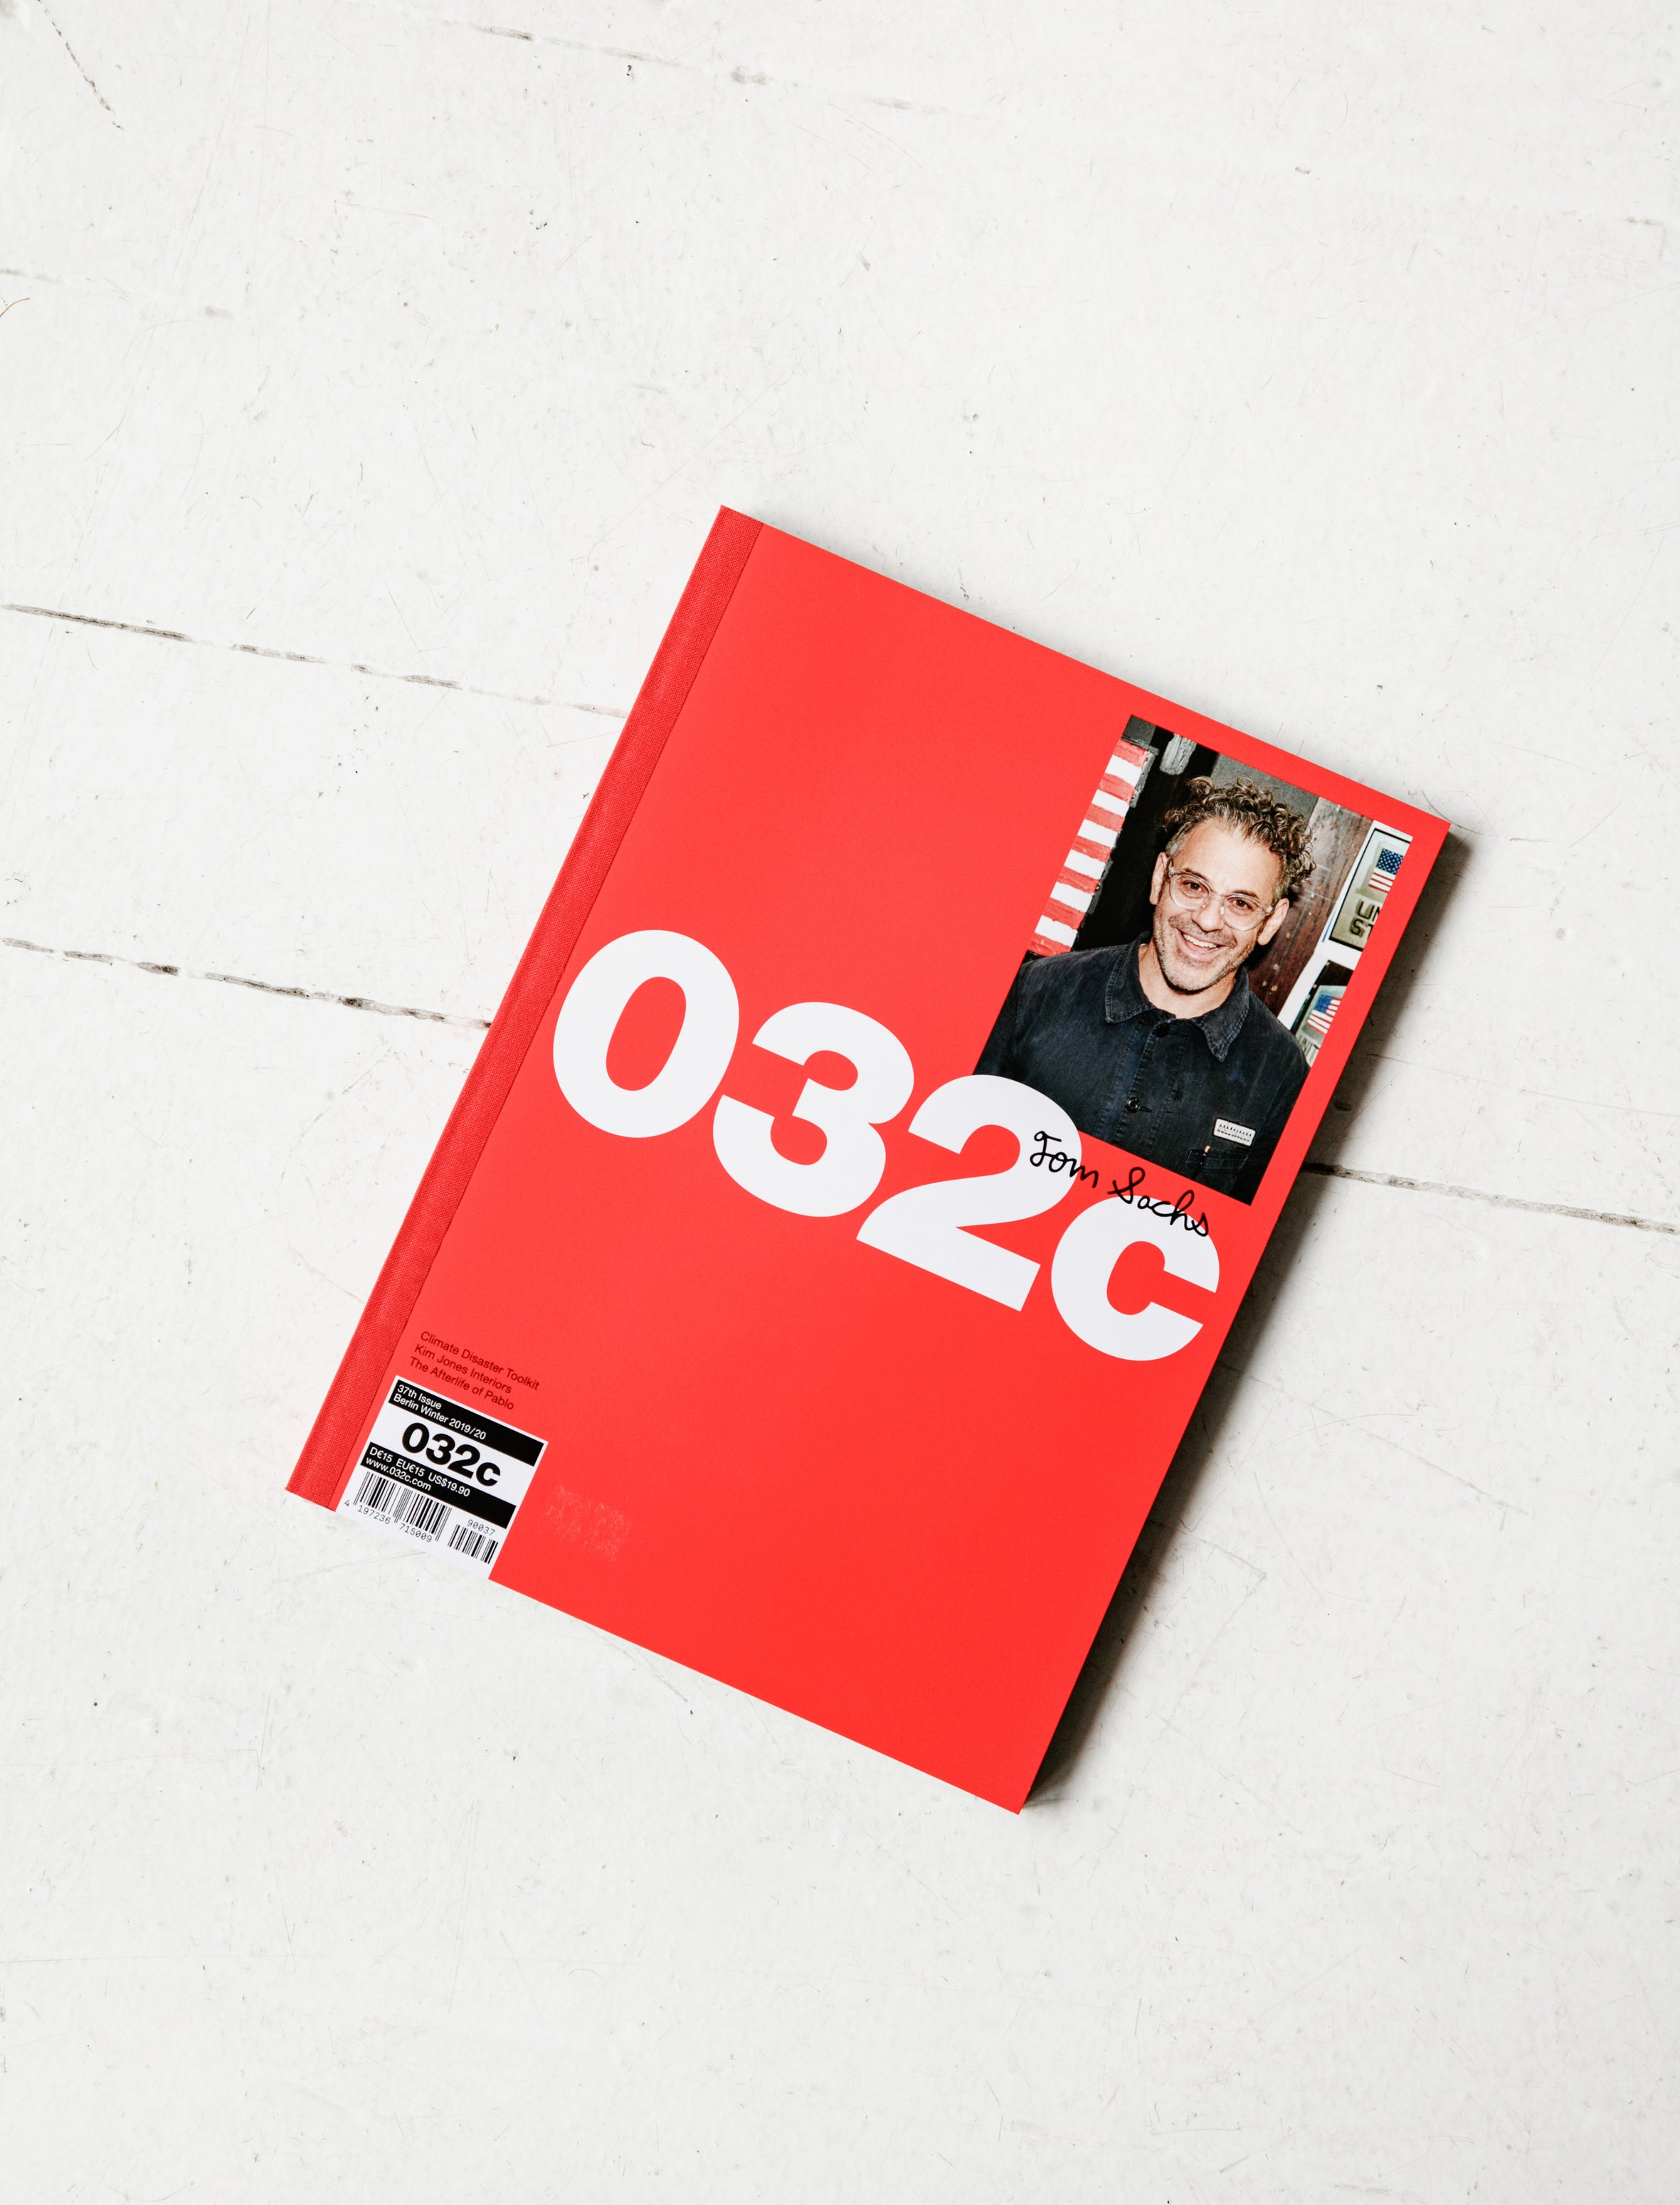 032C - Issue 37